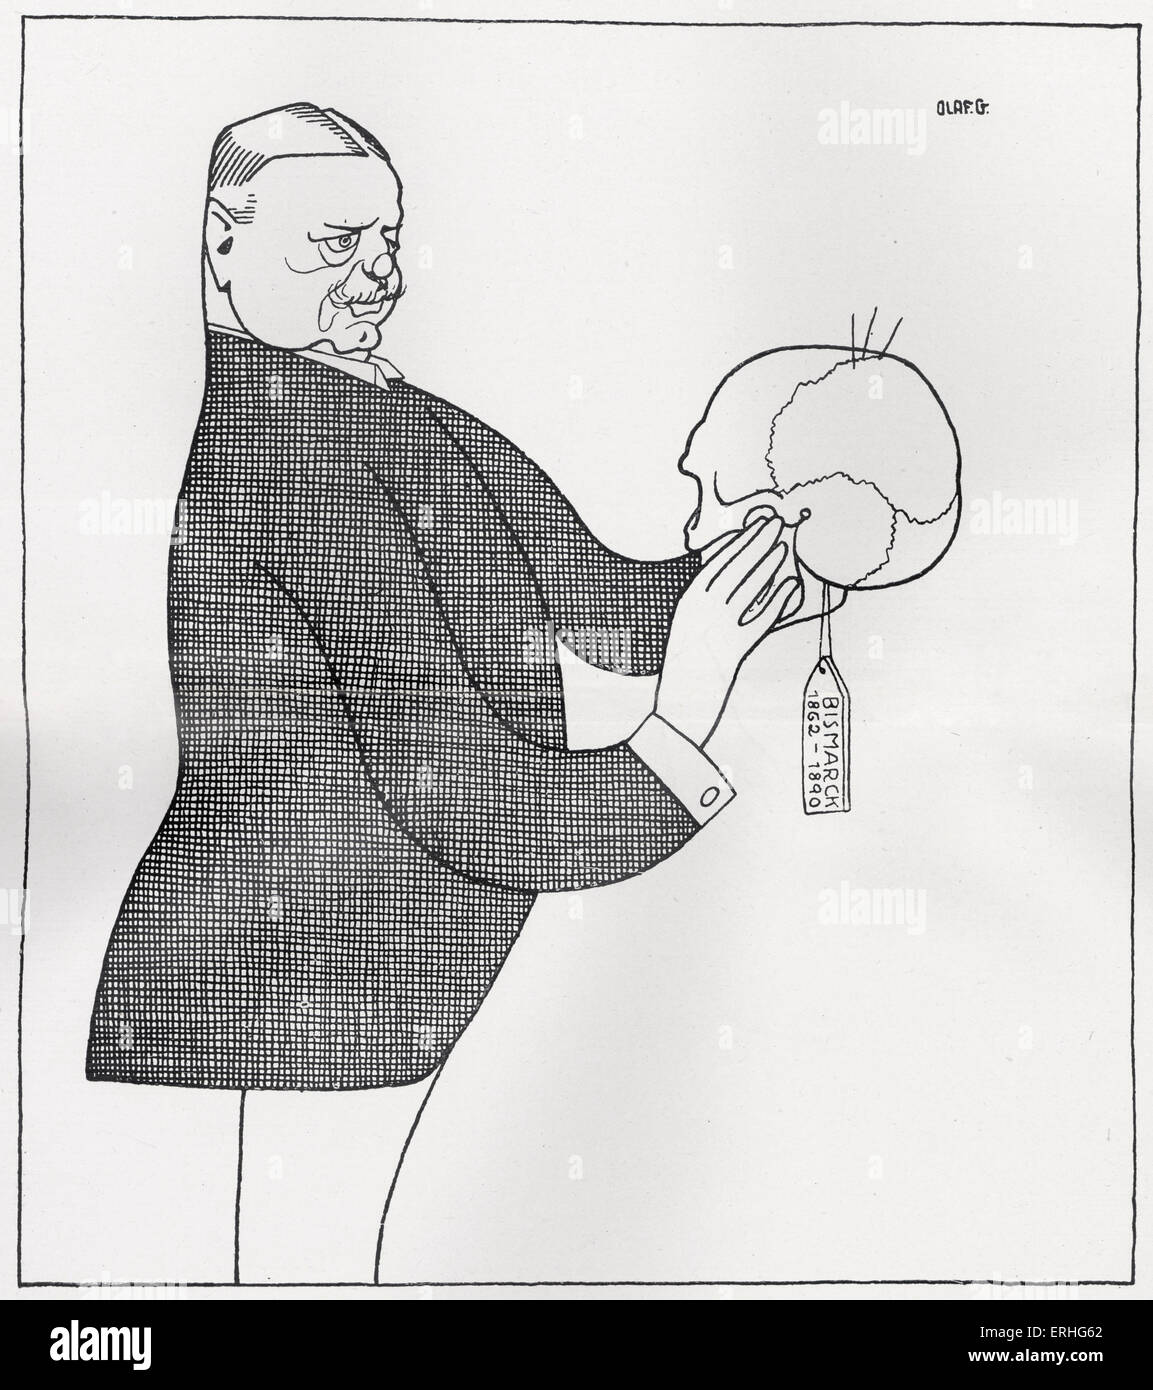 Bernhard von Bulow - caricature of the German Chancellor from Olaf Gulbransson 's 'Beruhmte Zeitgenossen'. - Stock Image